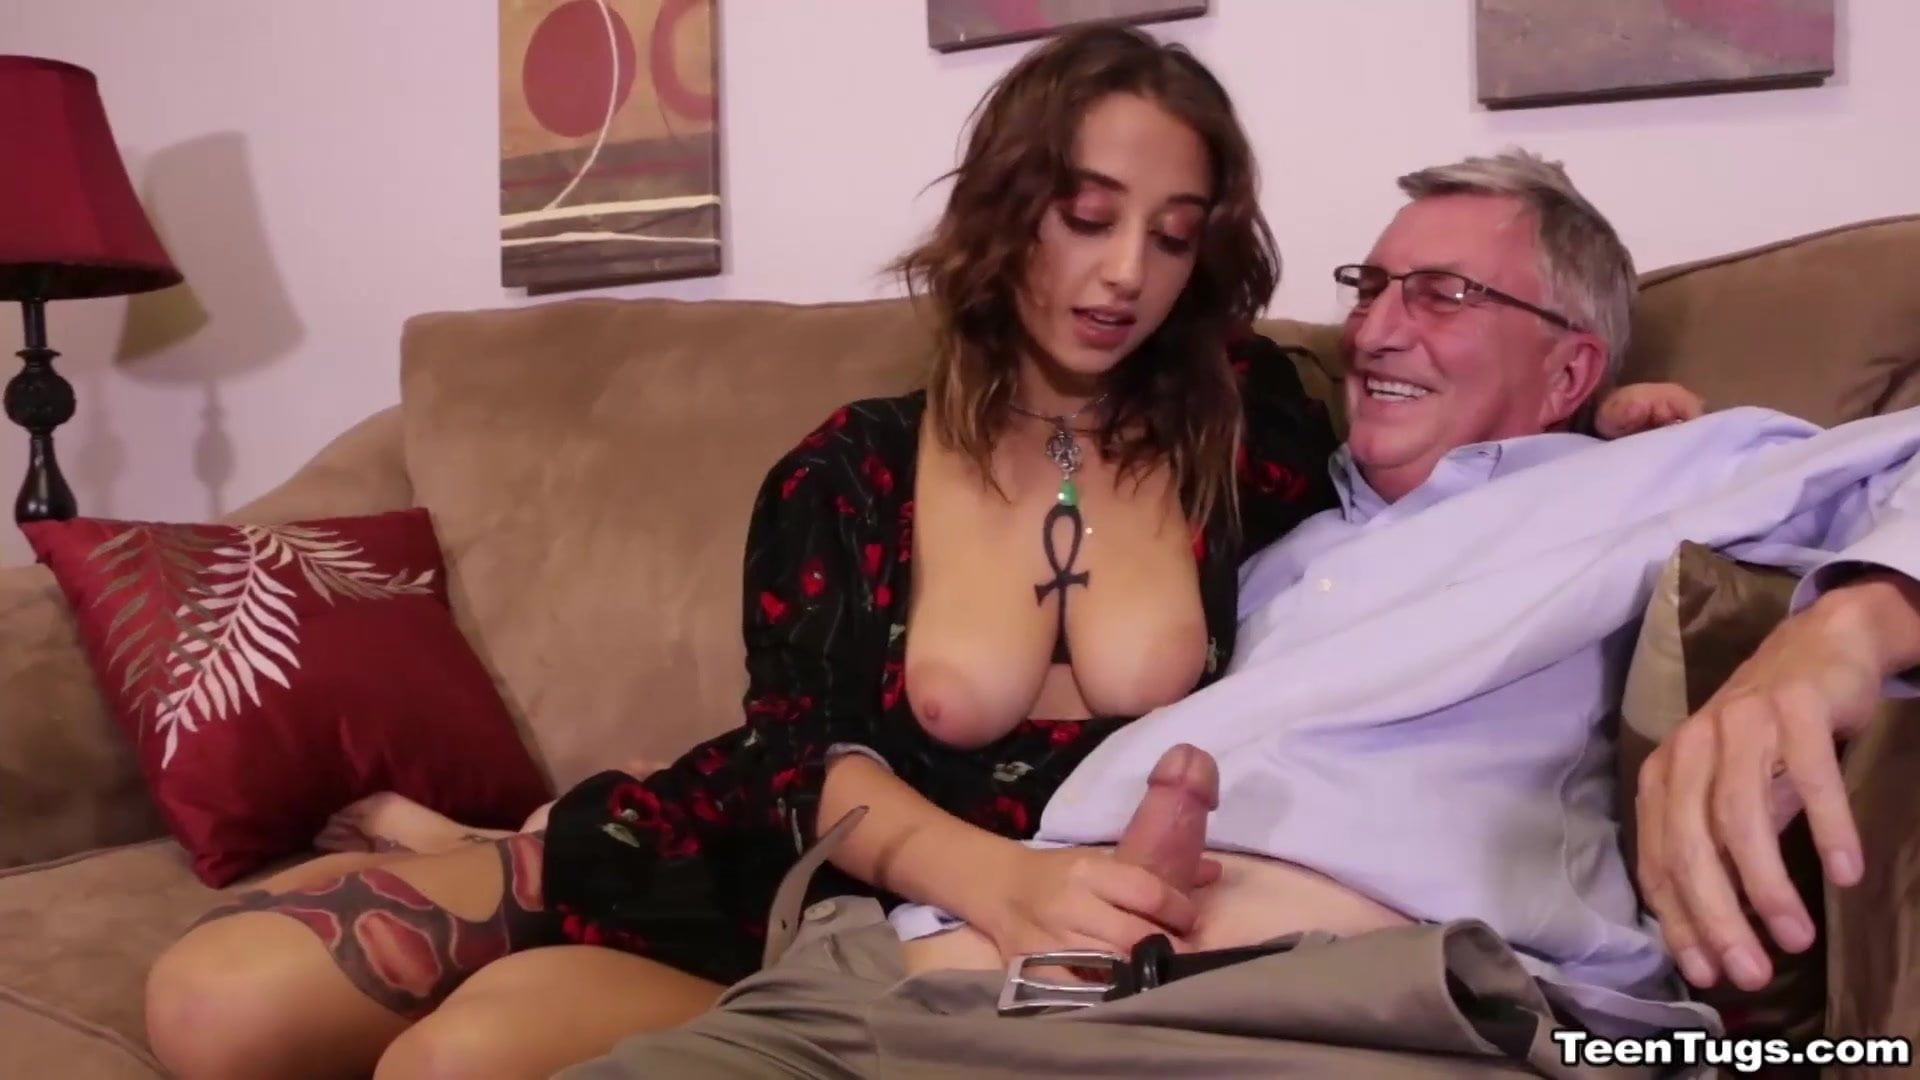 Jerking Off The Old Man, Free Free Xnnxx Porn Ca Xhamster-7324